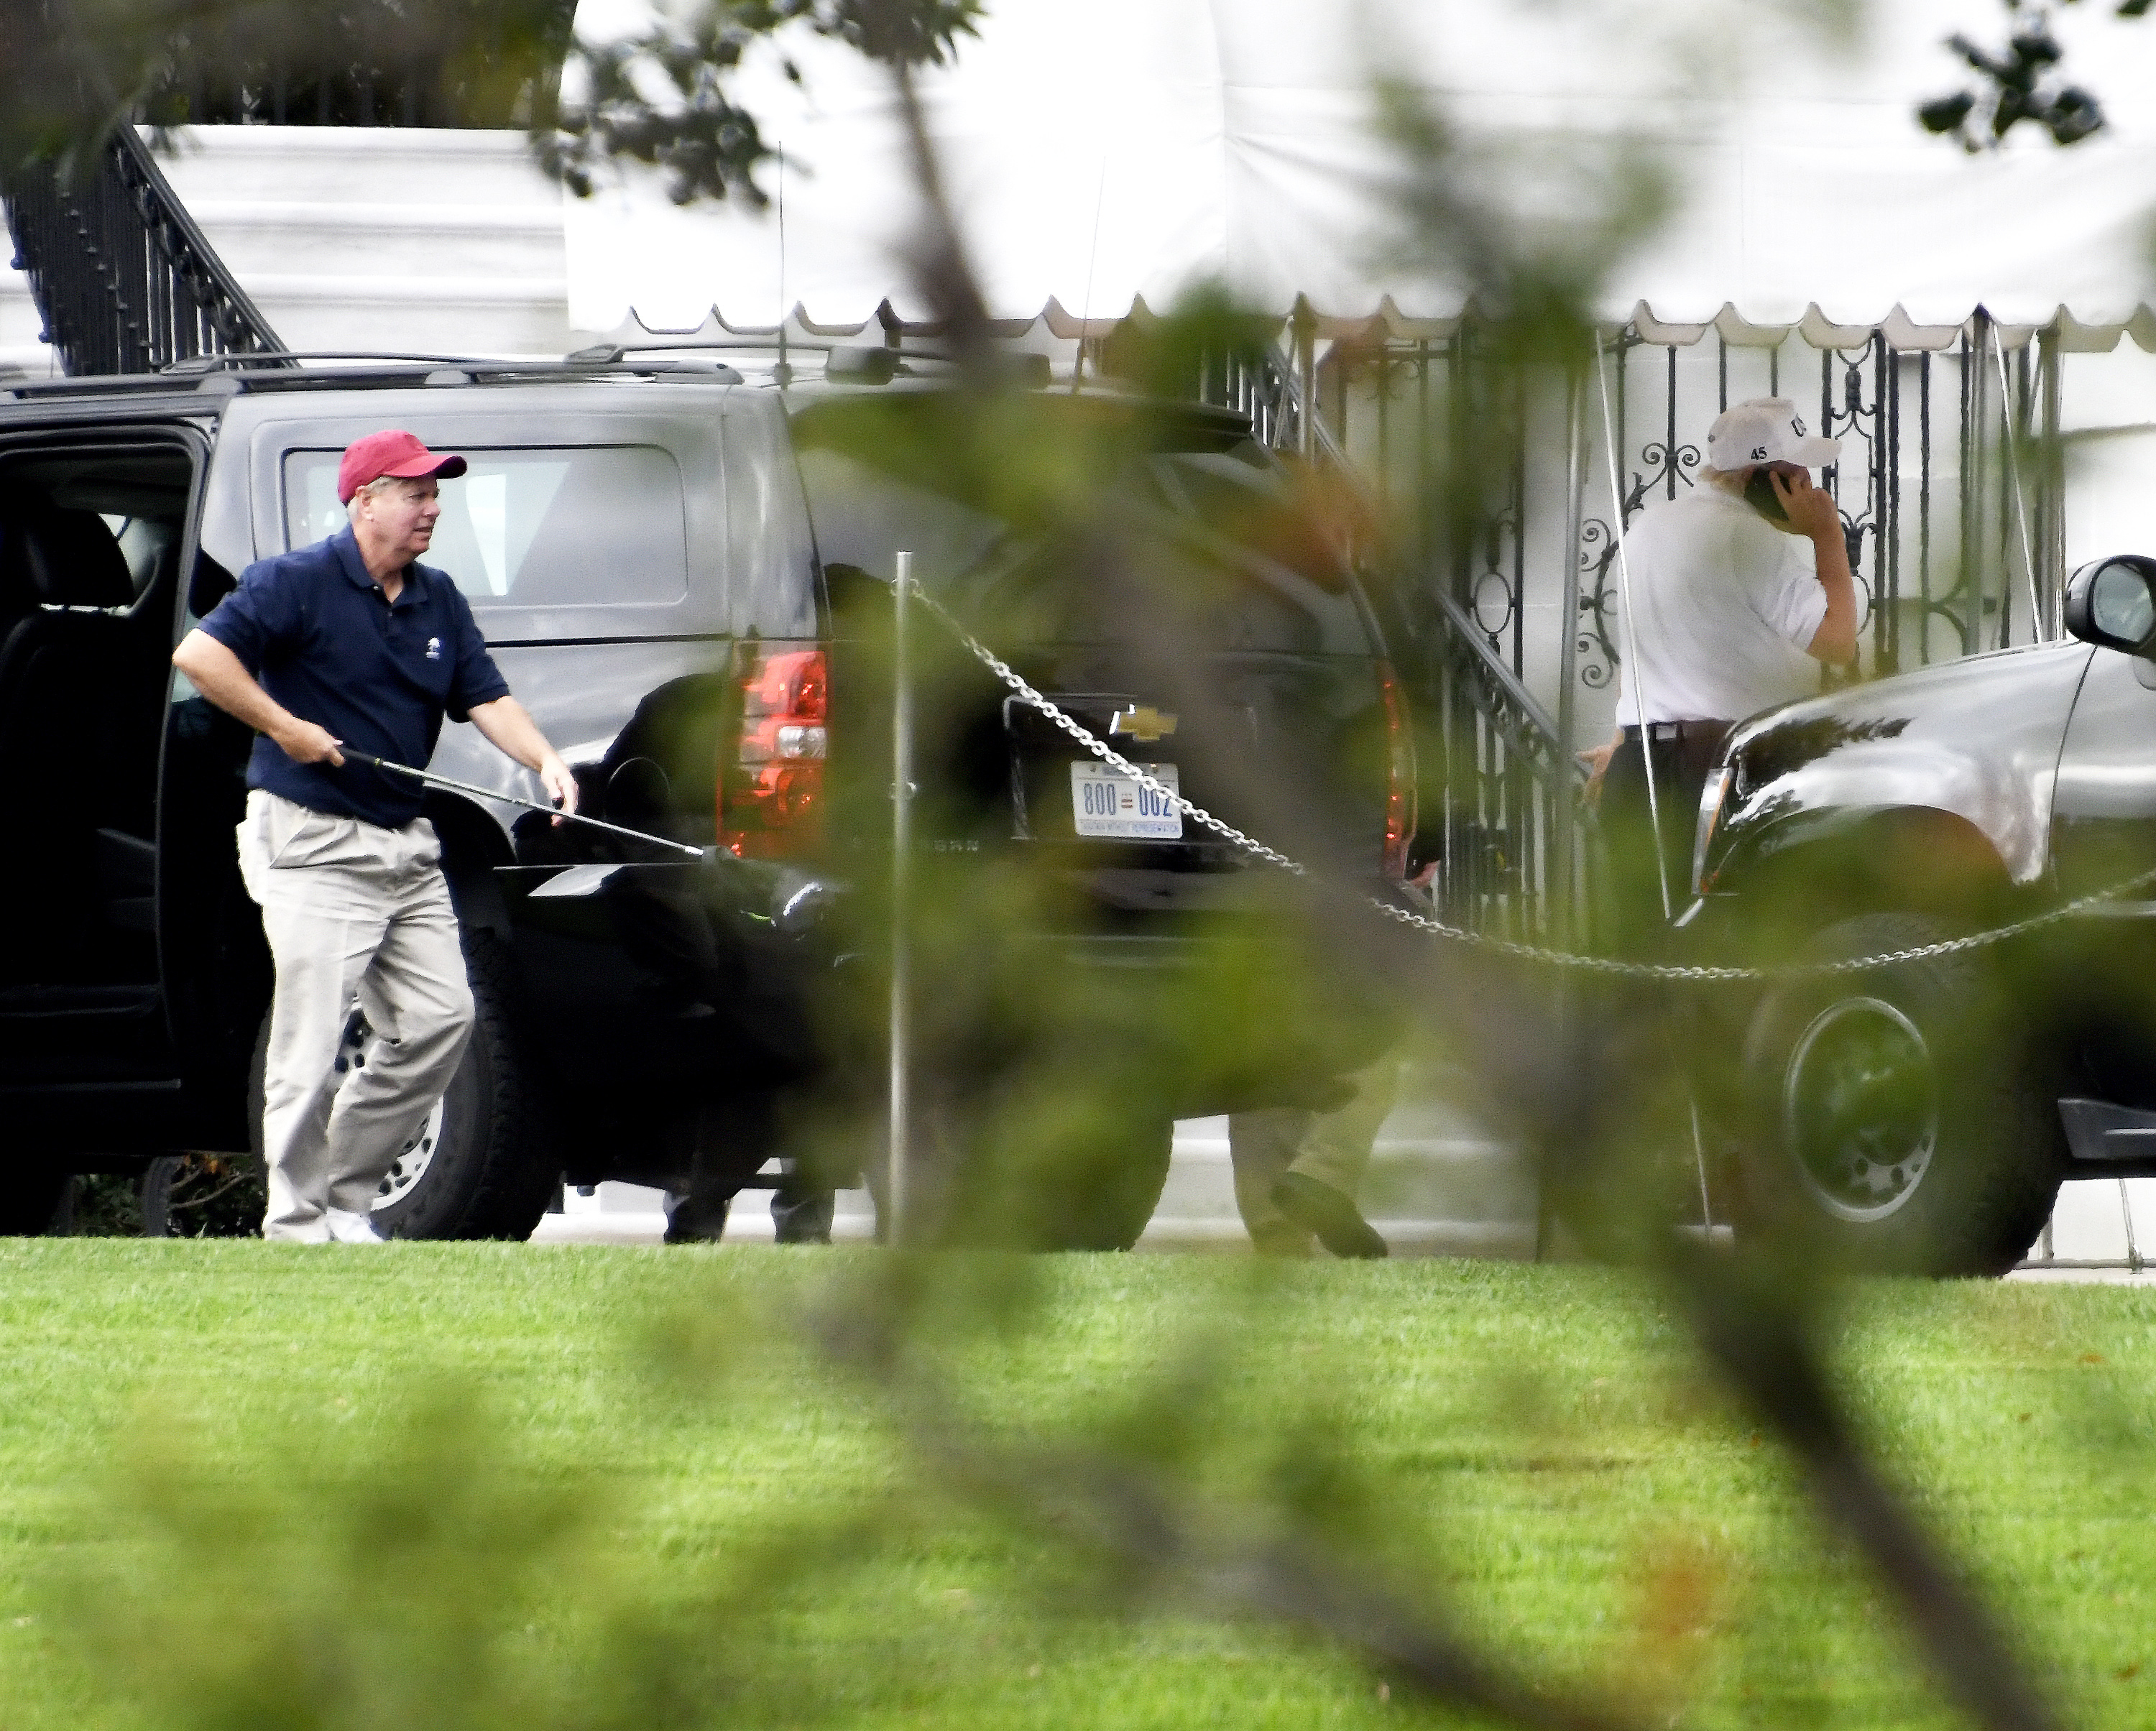 WASHINGTON, DC - OCTOBER 14: (AFP OUT) Senator Lindsey Graham (R-SC), left, carries one of his golf clubs as he leaves the presidential limo at the White House on October 14, 2017 in Washington, DC. U.S. President Donald Trump is seen at right talking on the phone. The two are returning after playing a round of golf. (Photo by Ron Sachs - Pool/Getty Images)